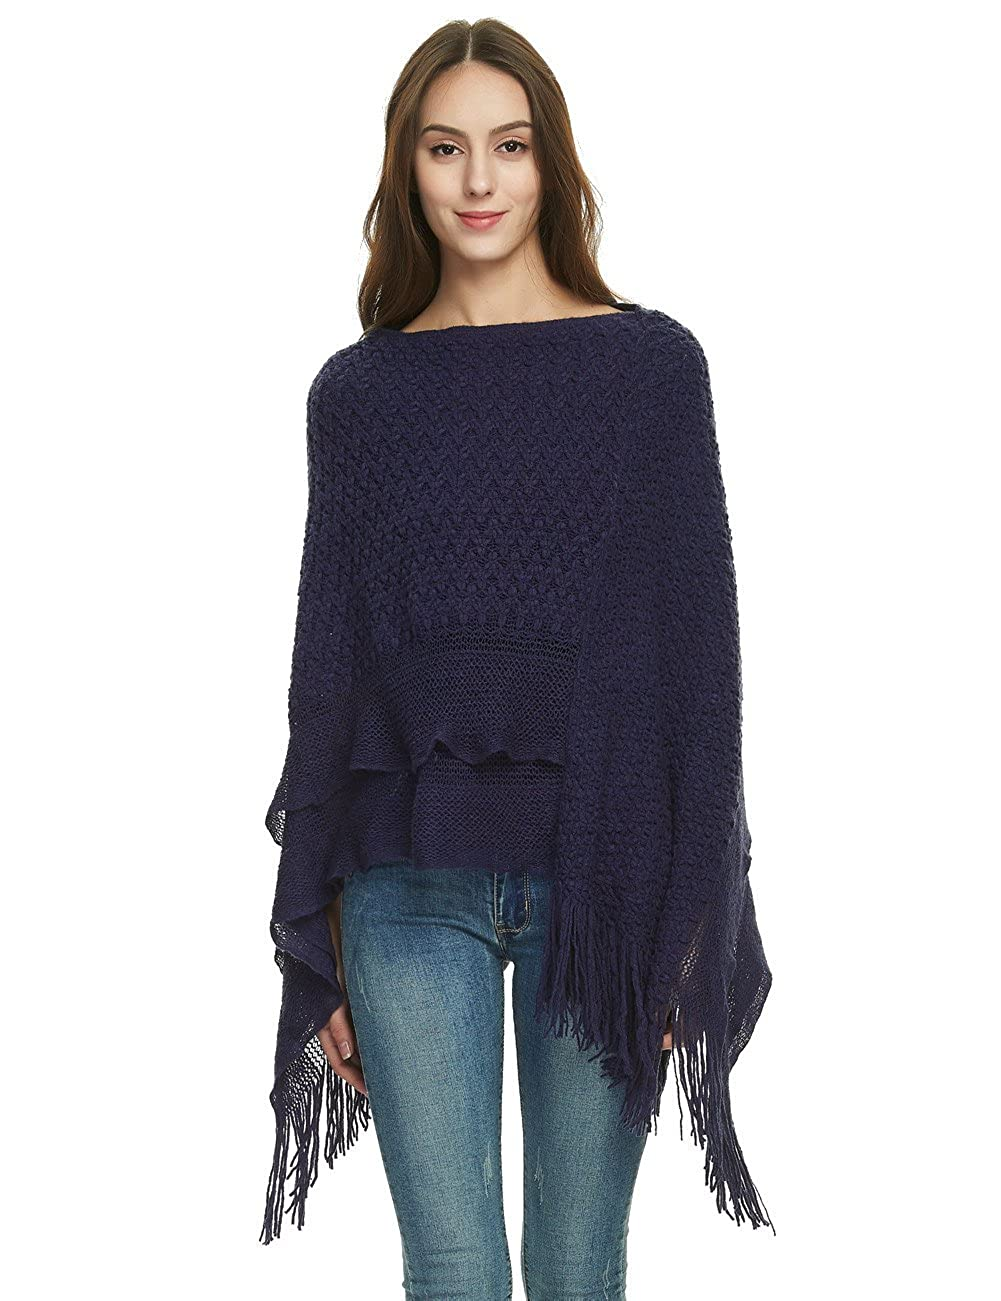 Ferand Women's Cable Knit Ruffle Poncho Sweater with Fringed Hems One Size Black